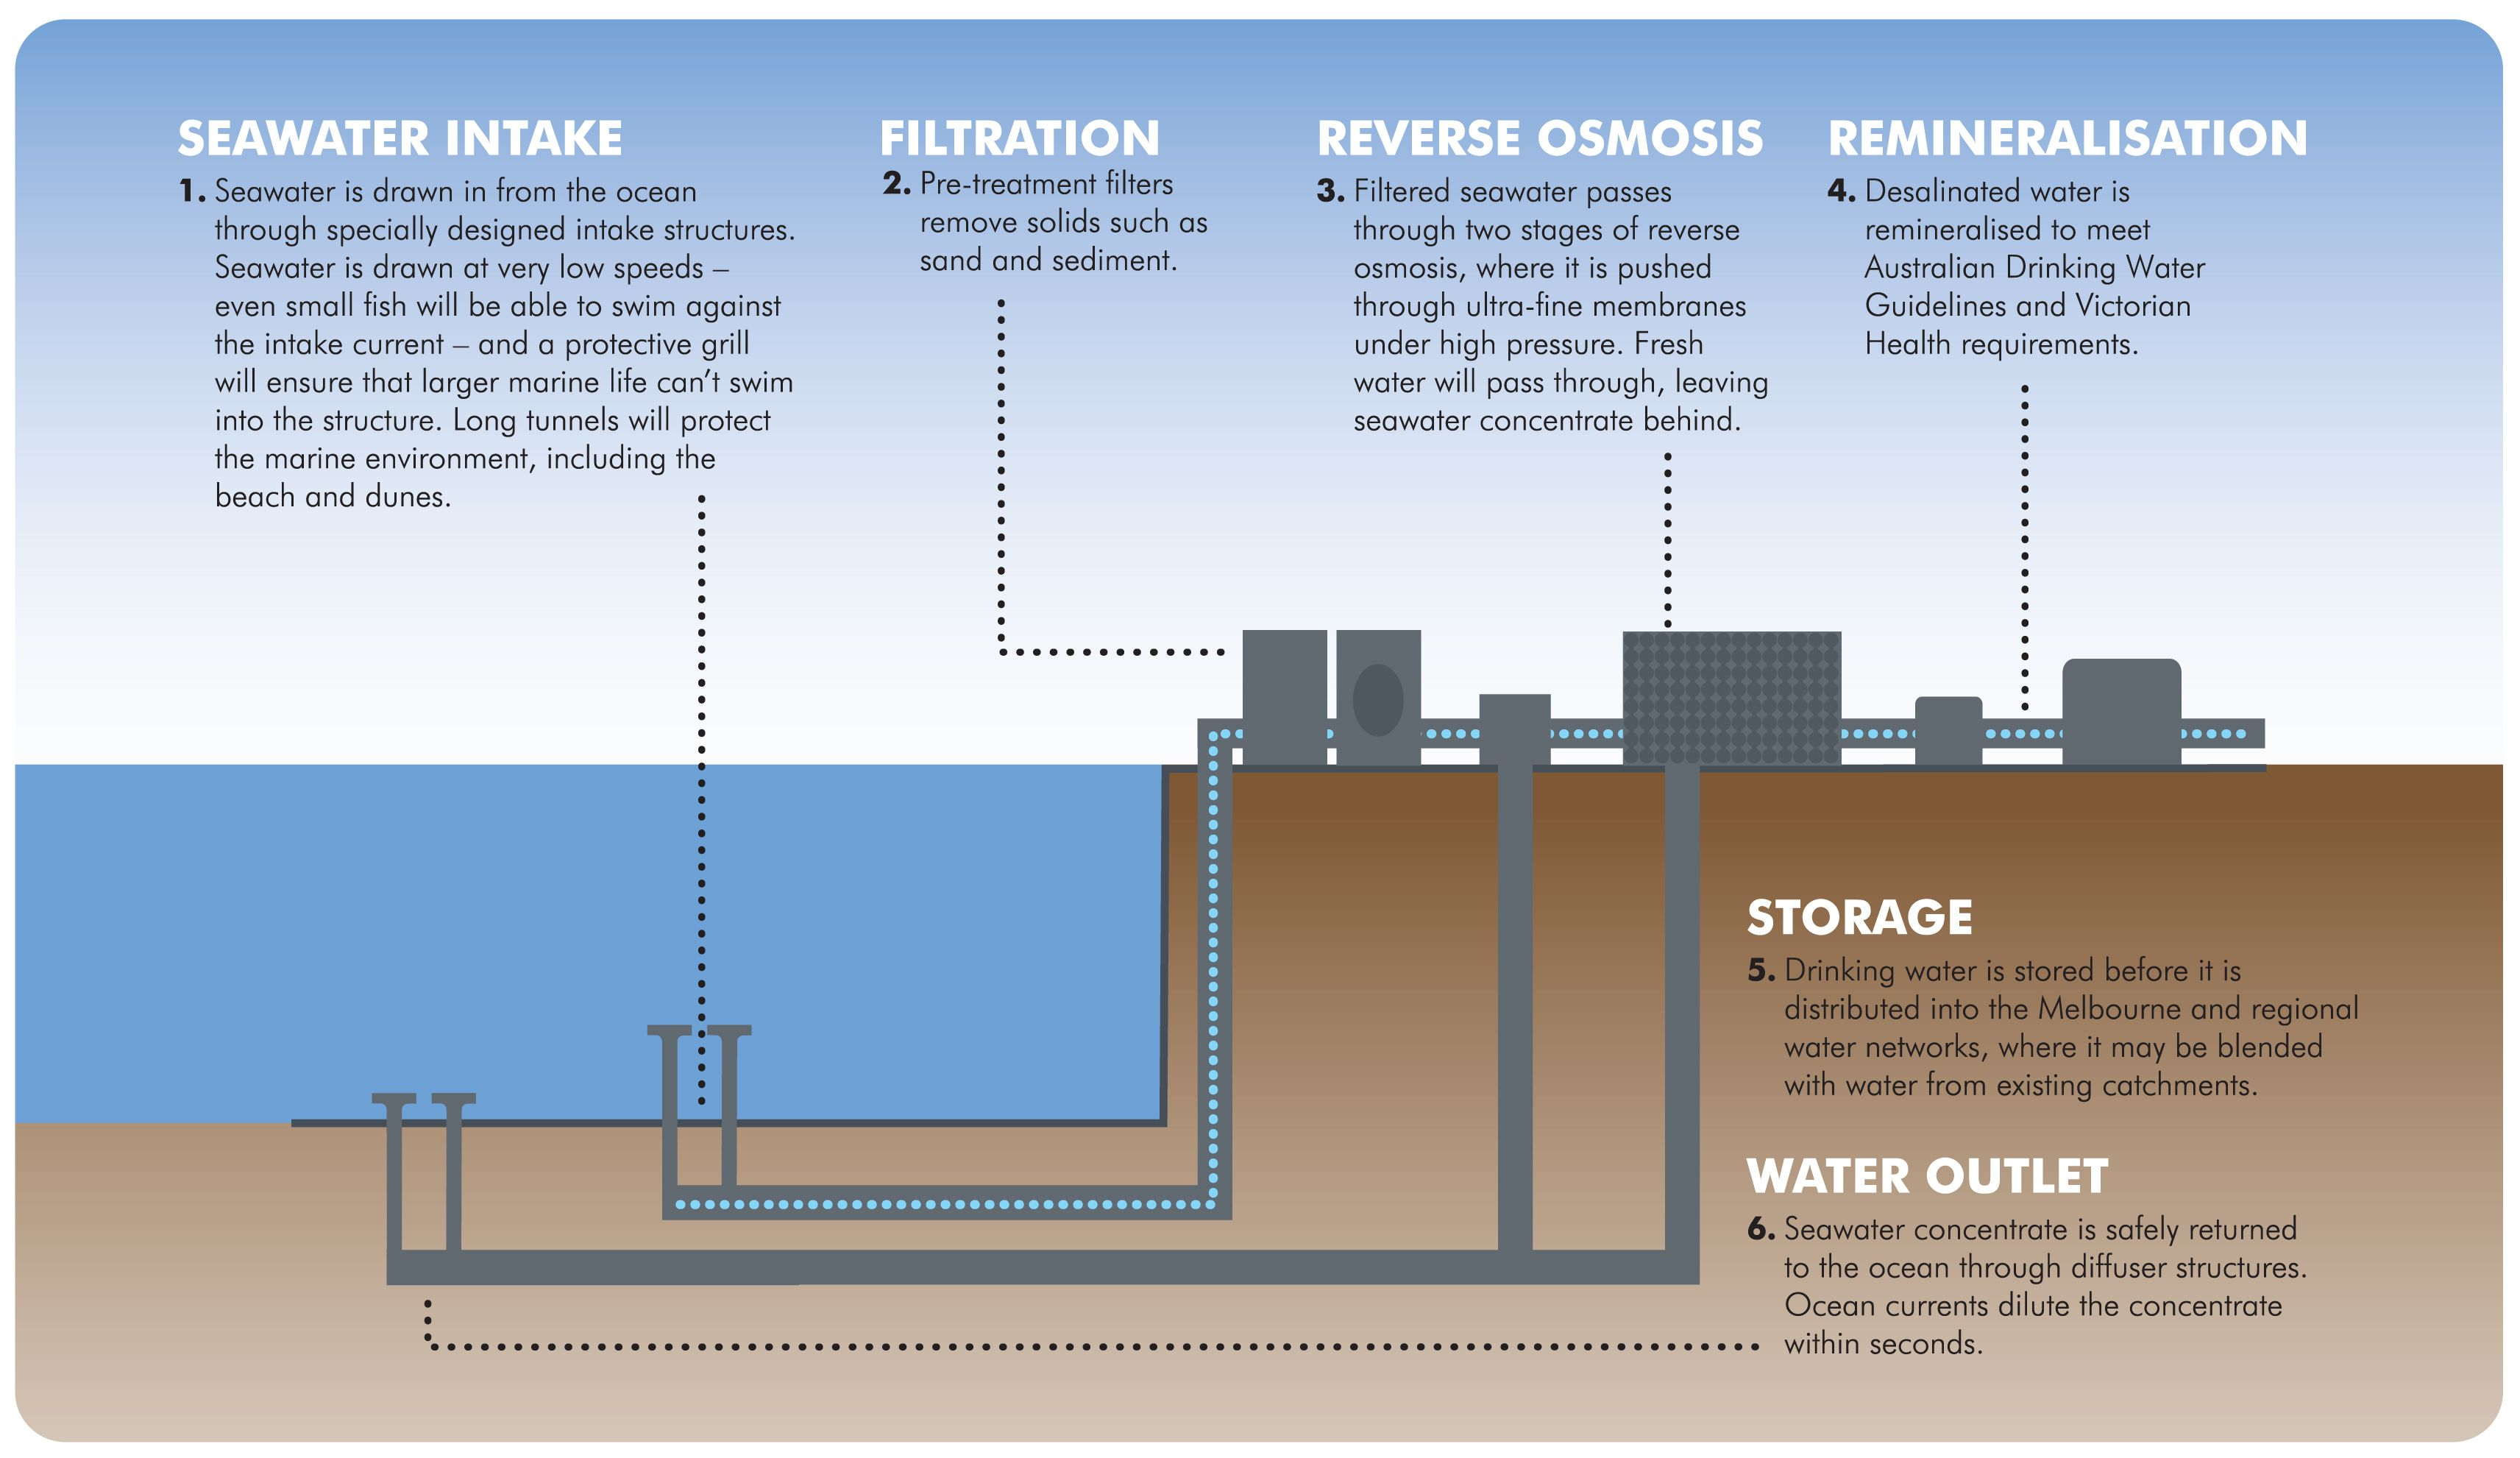 desalination graphic | Desalination | Earth surface, Plants